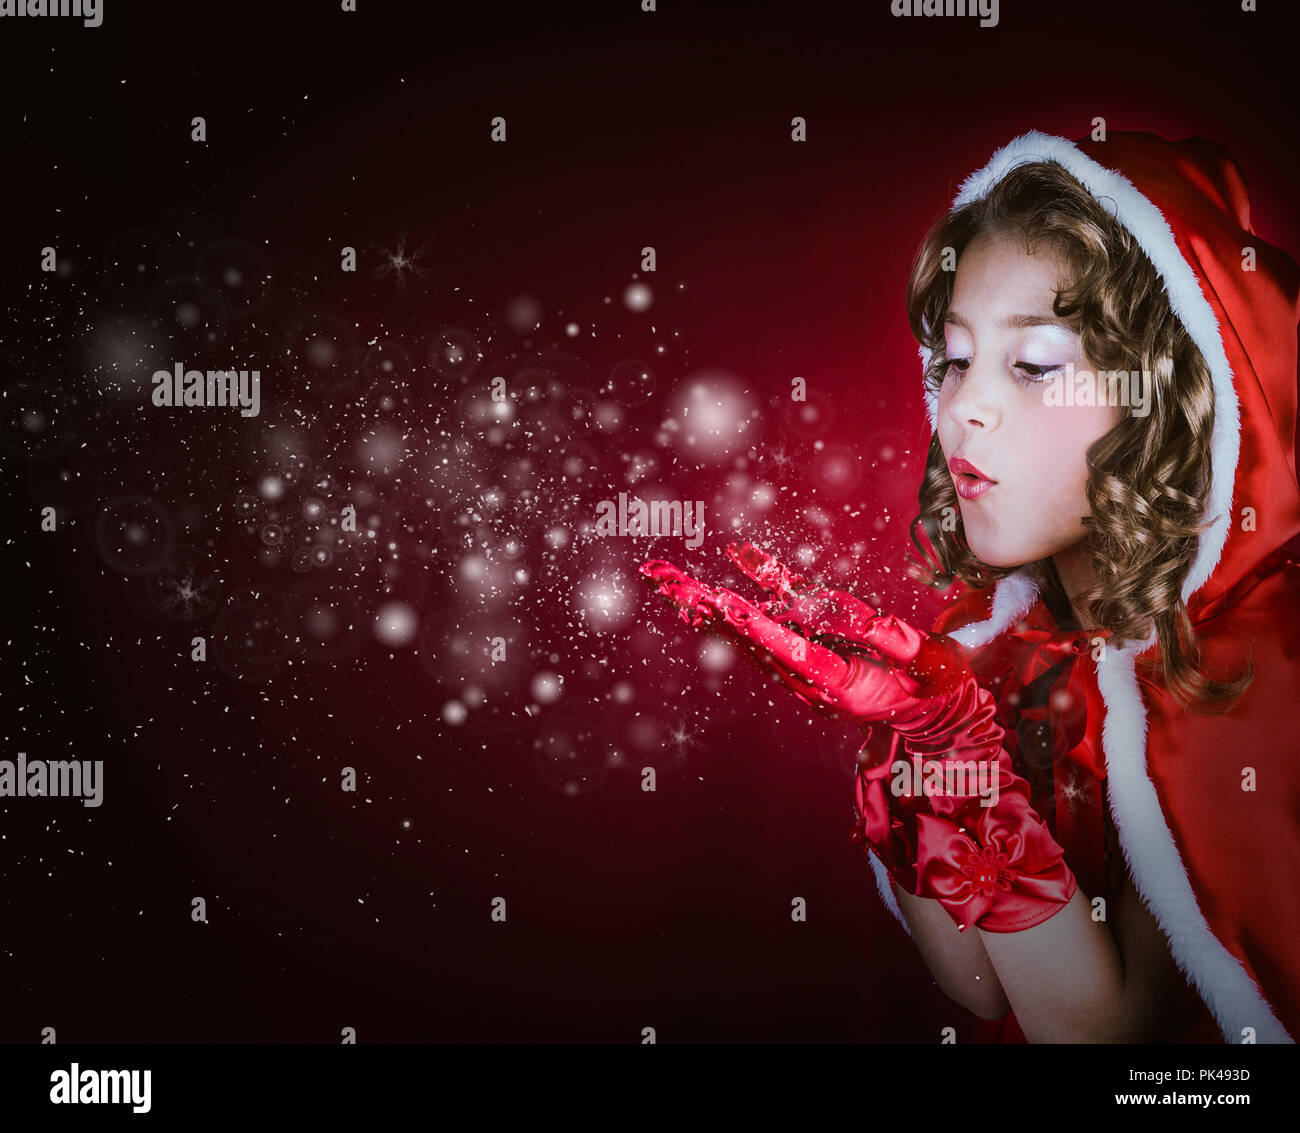 Christmas magic. Little girl wearing Santa Claus costume whispering snowflakes on a red background - Stock Image